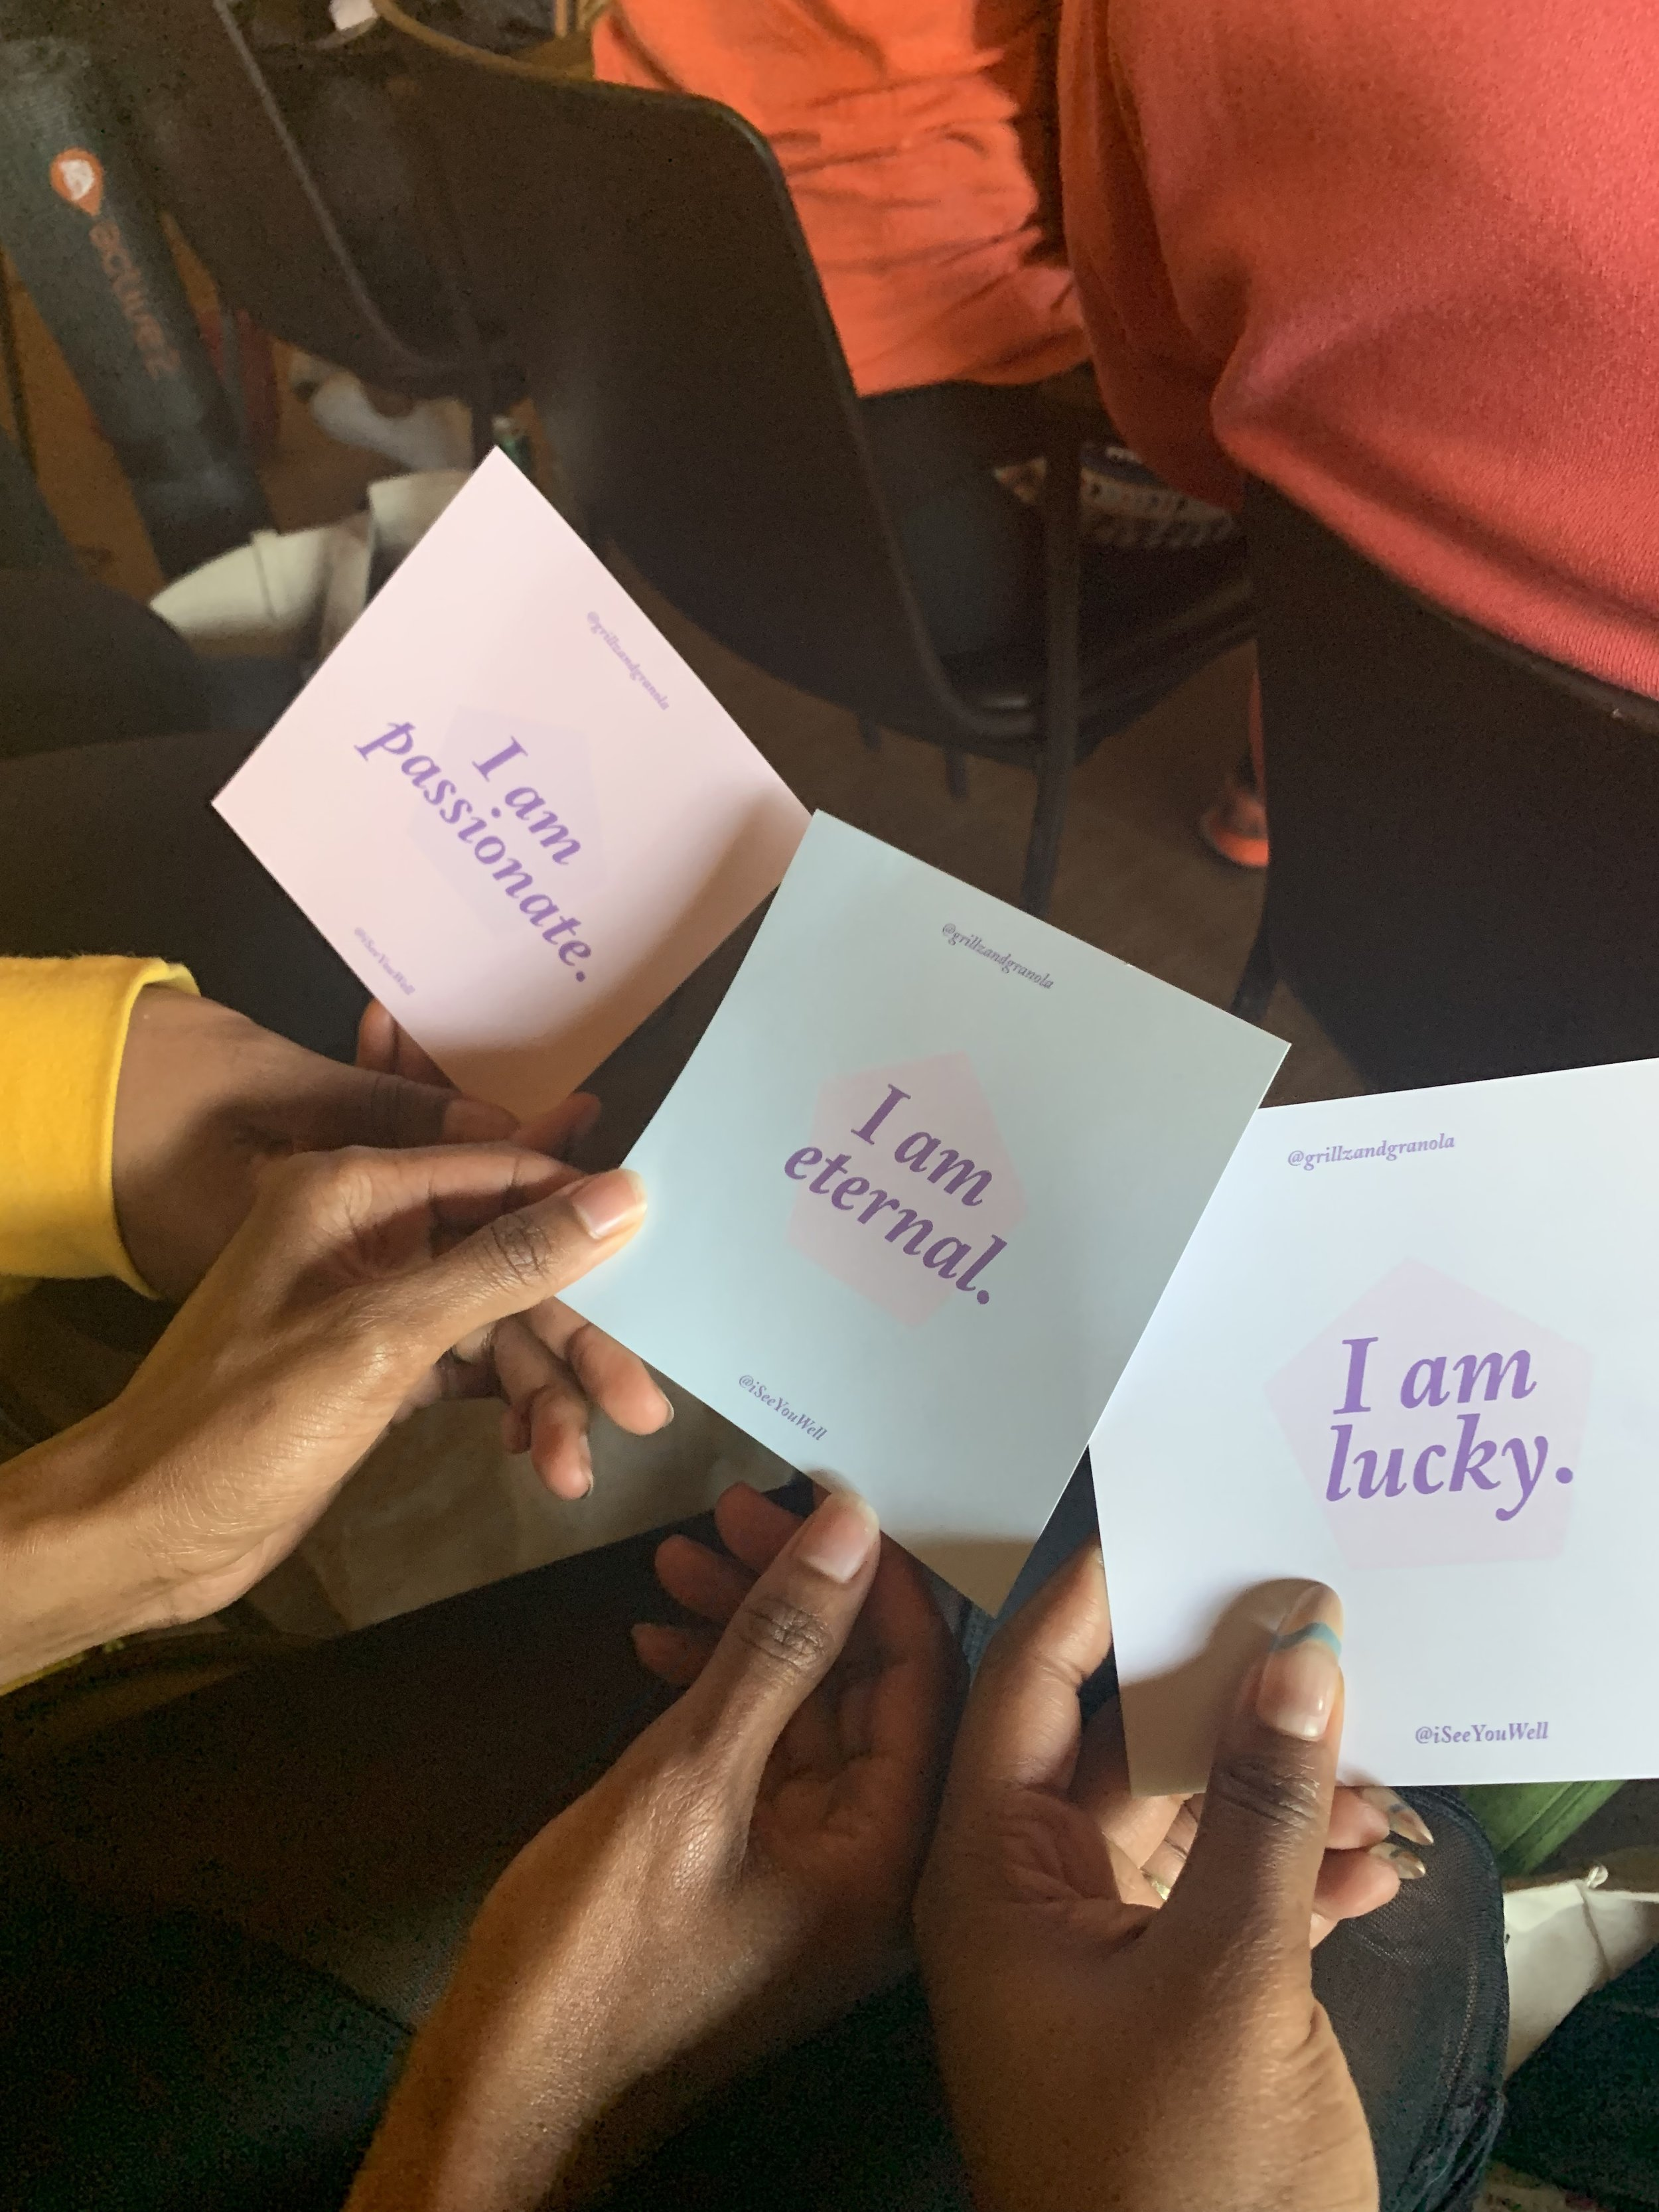 Our affirmation cards given out at the start of Zen Day. Photo Credit:  IG: @simply.savonne